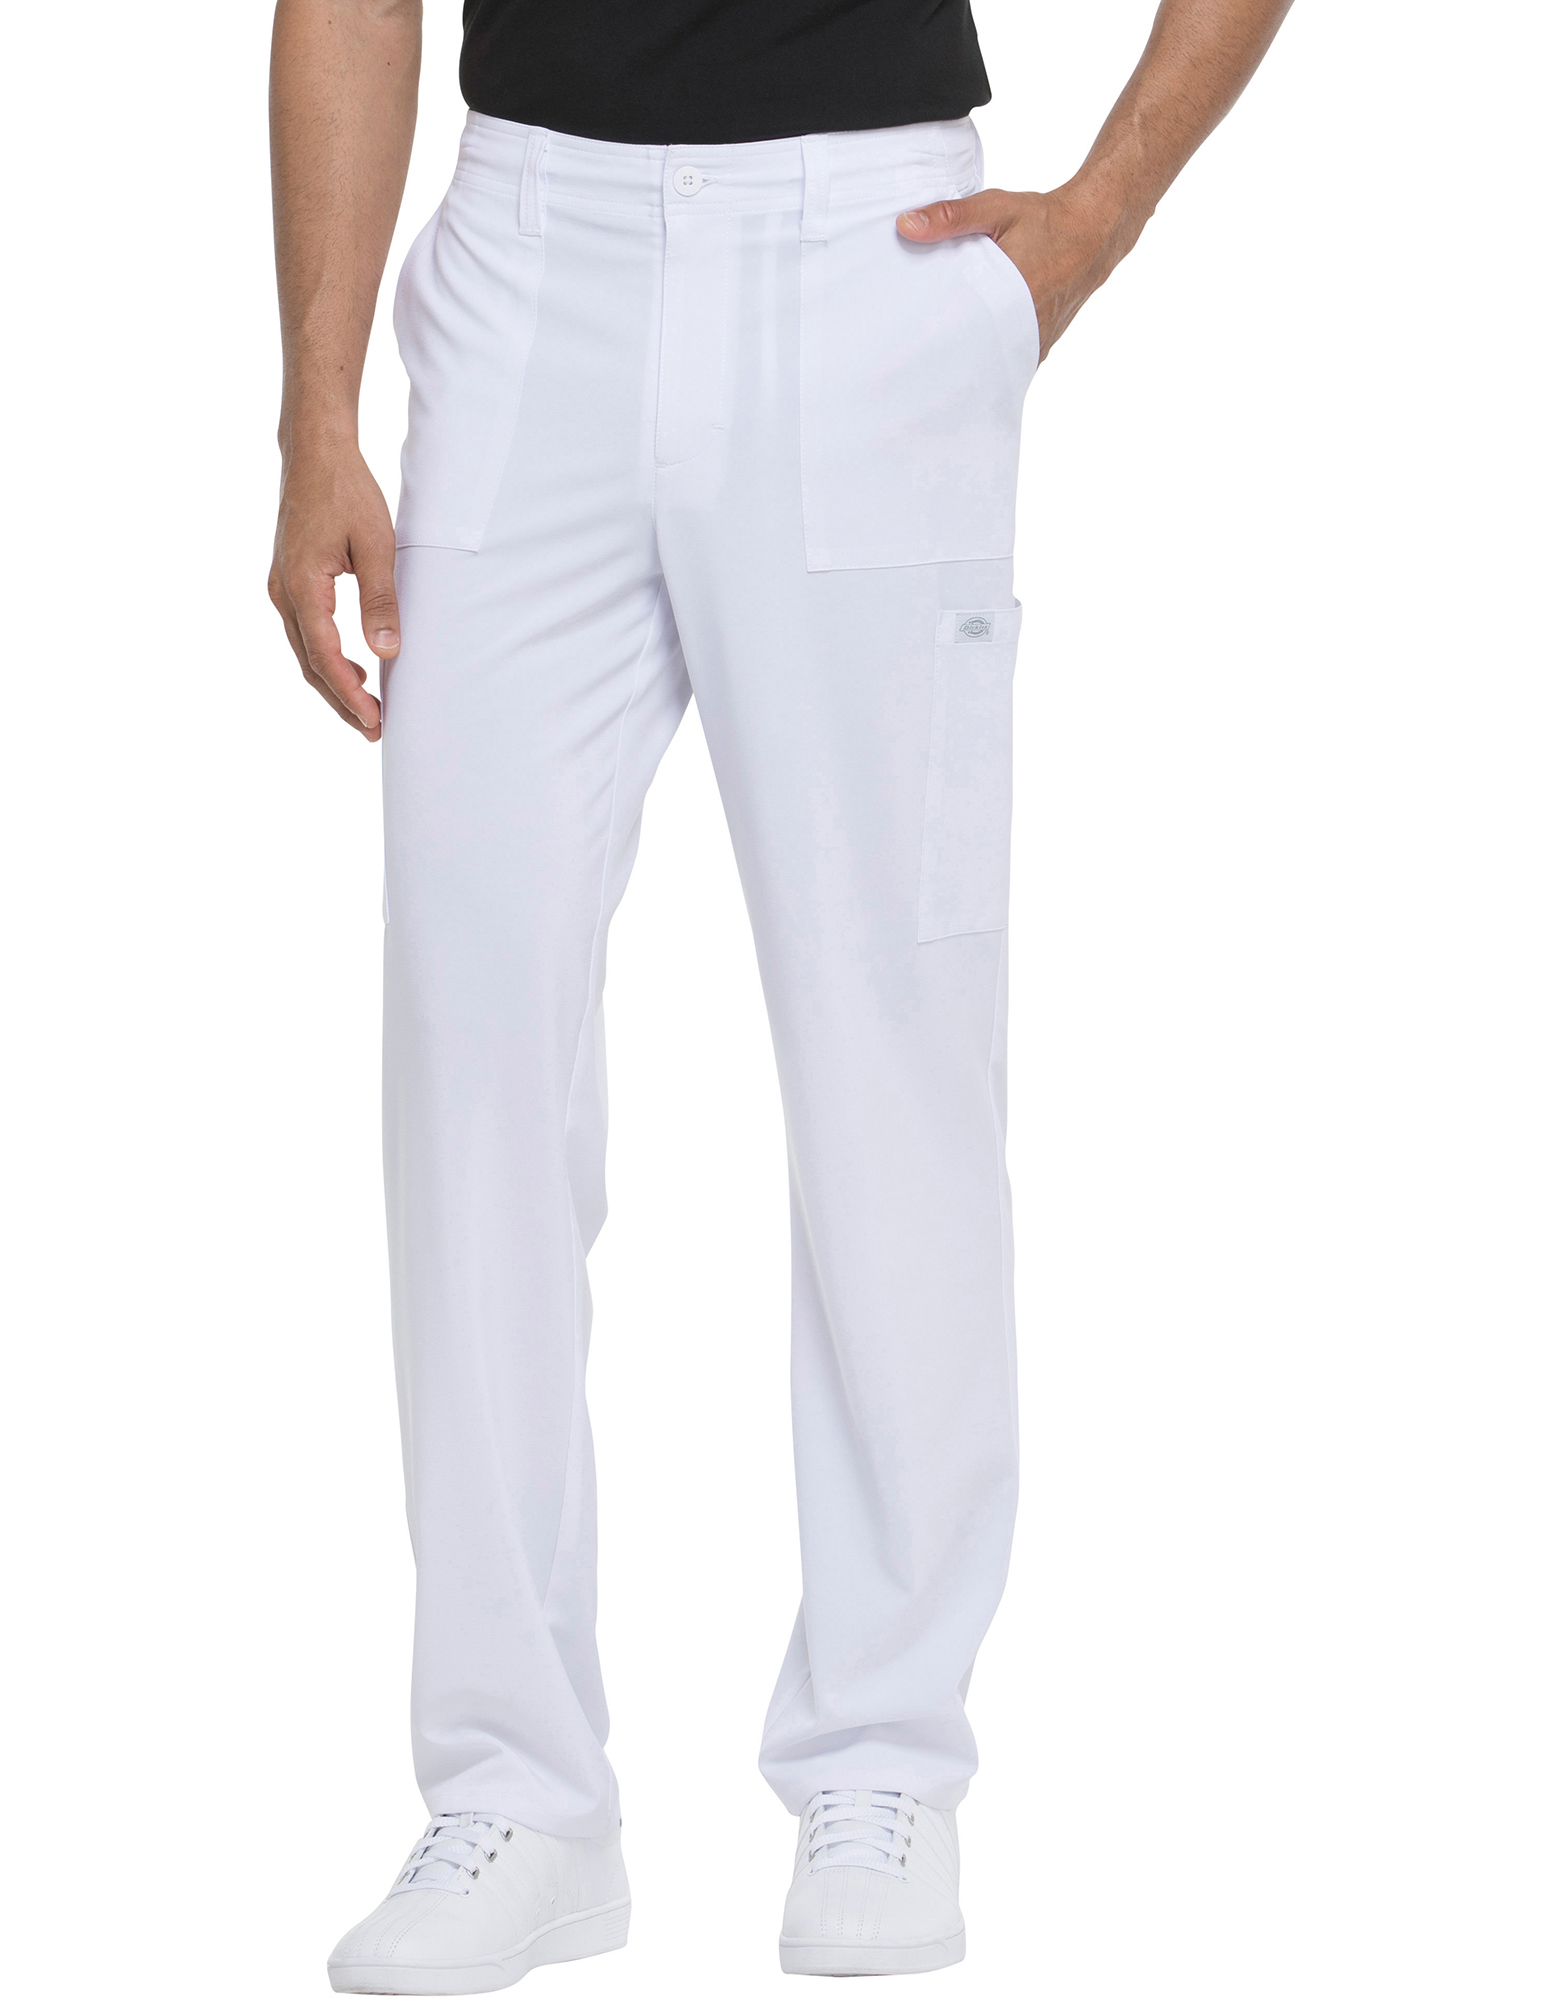 Men's EDS Essentials Natural Rise Drawstring Scrub Pants - White (DWH)